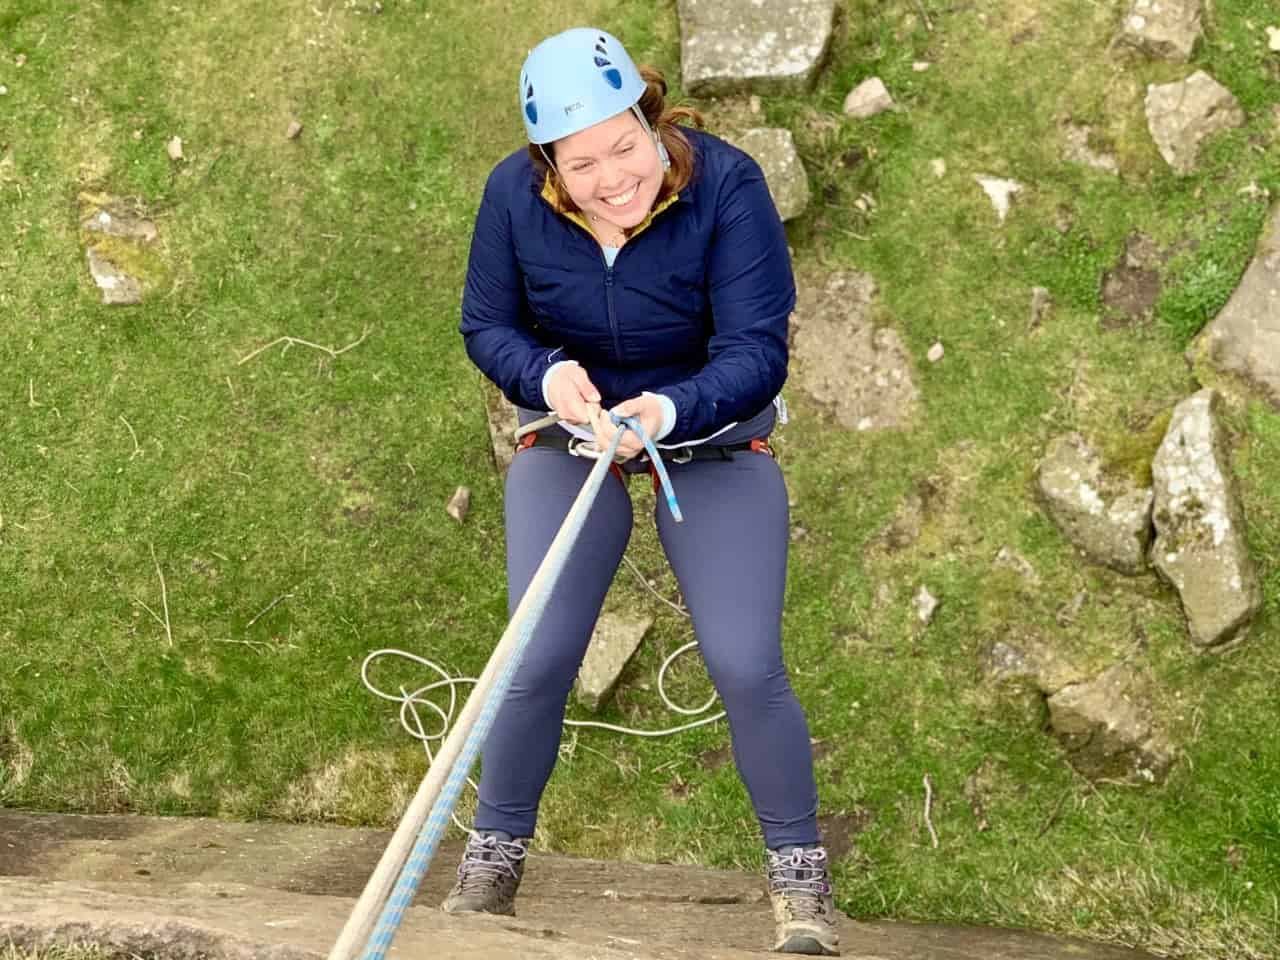 A lady abseiling on a challenge event